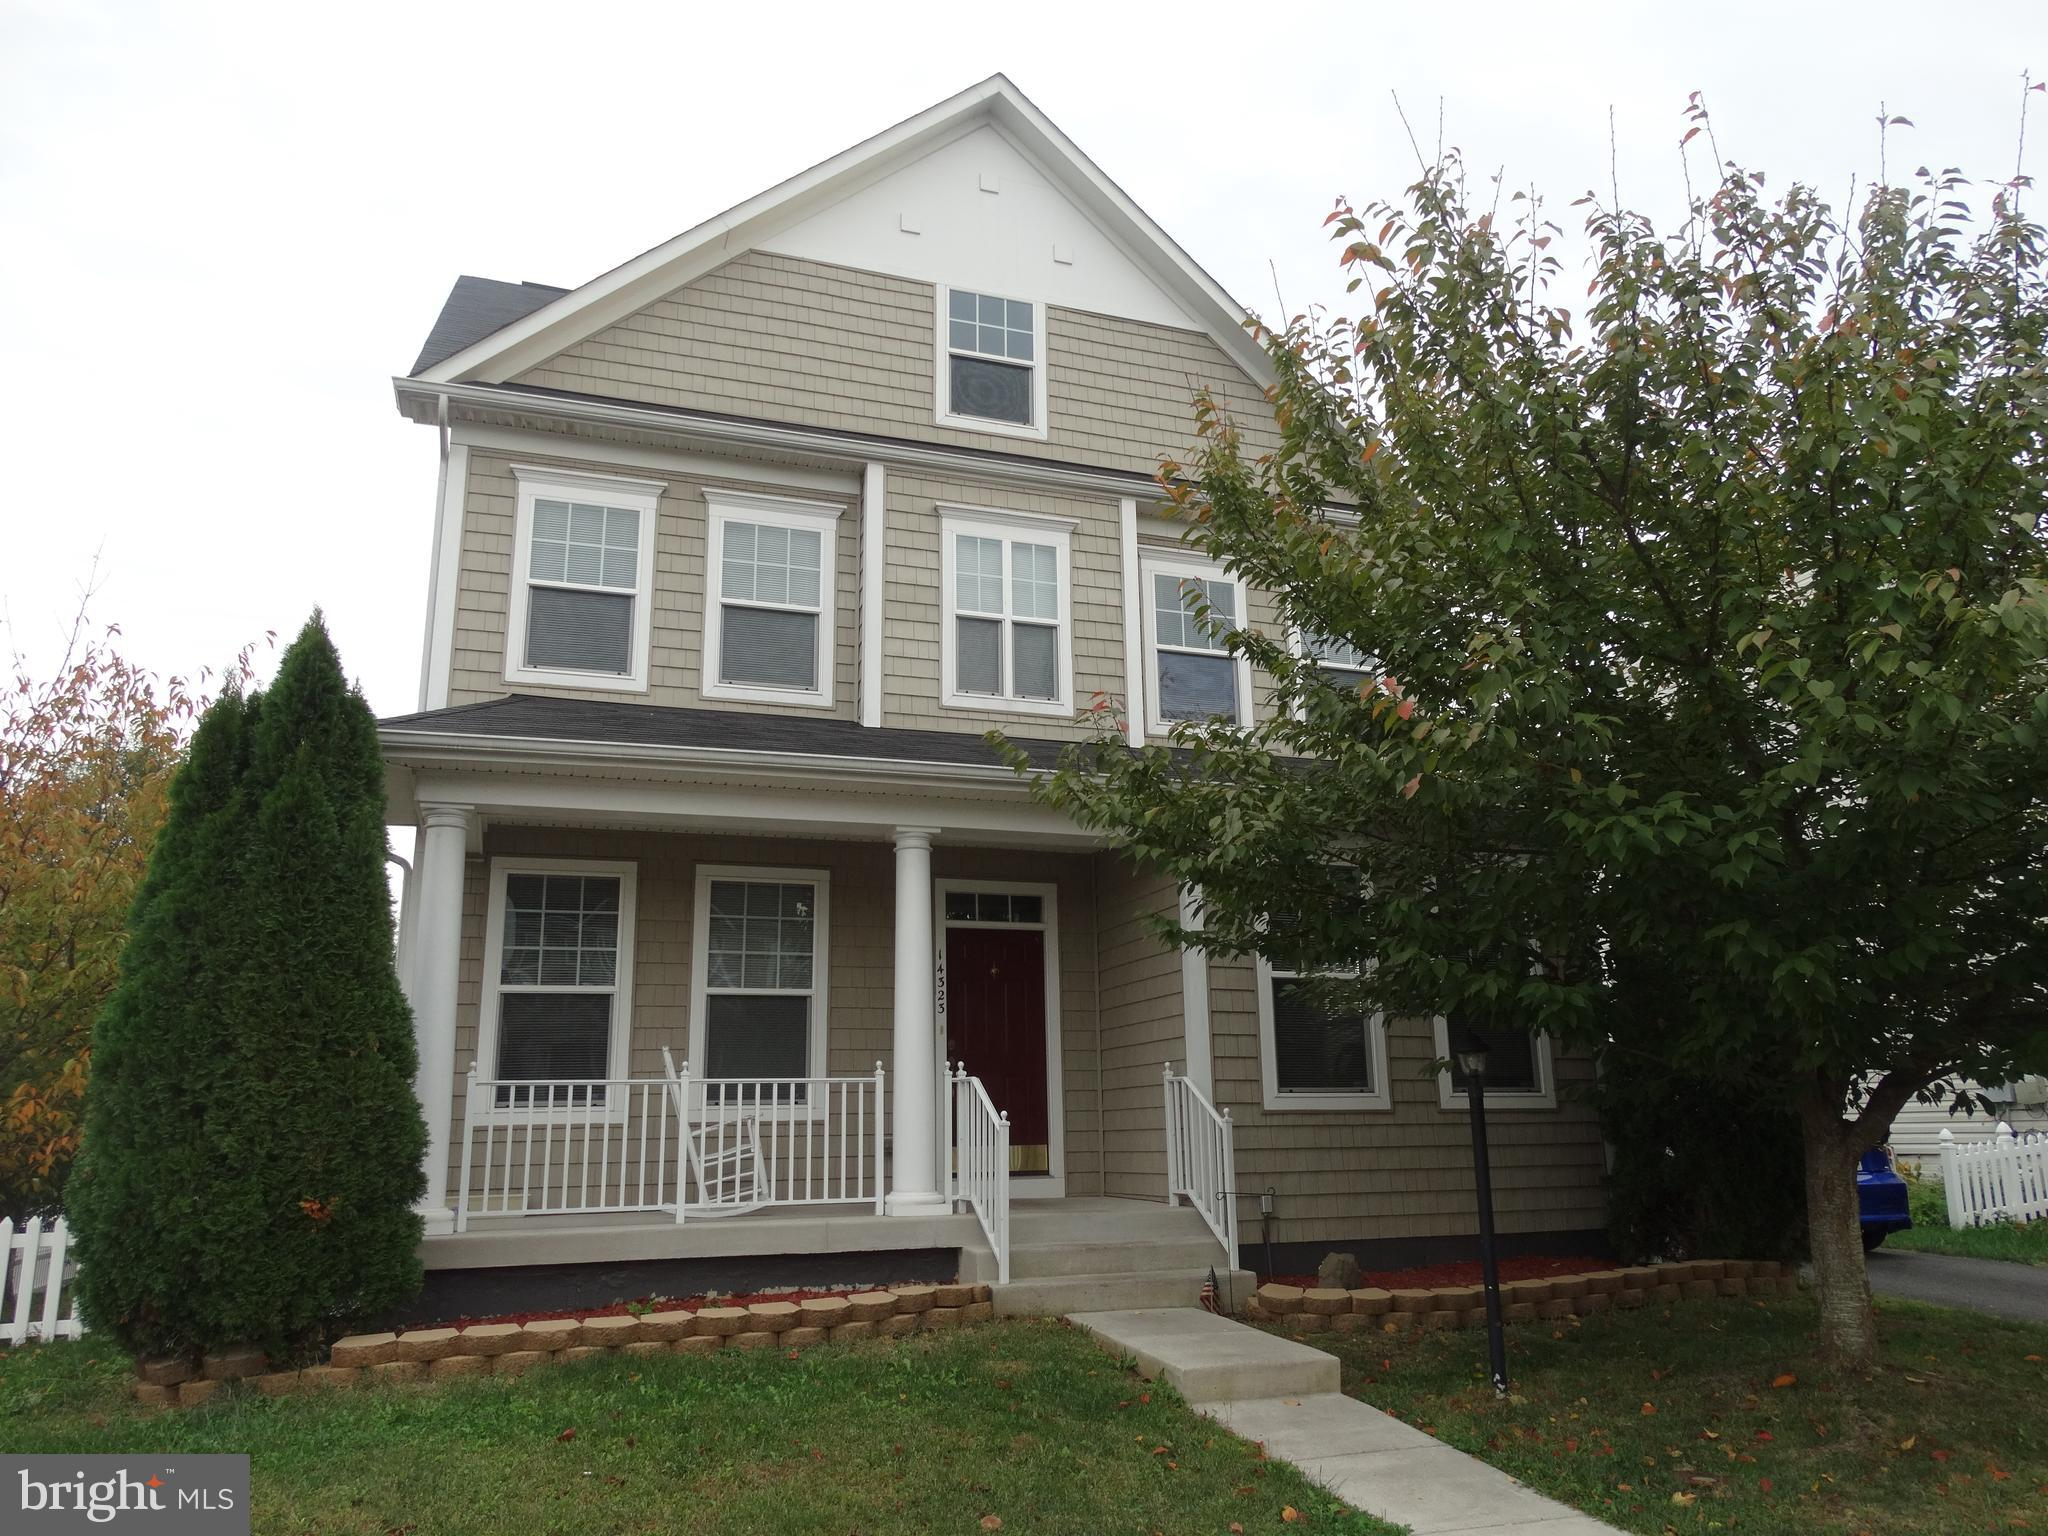 BEAUTIFUL 3 levels End single-family home, Huge Fenced yard. Property Shows well. Unfinished basemen